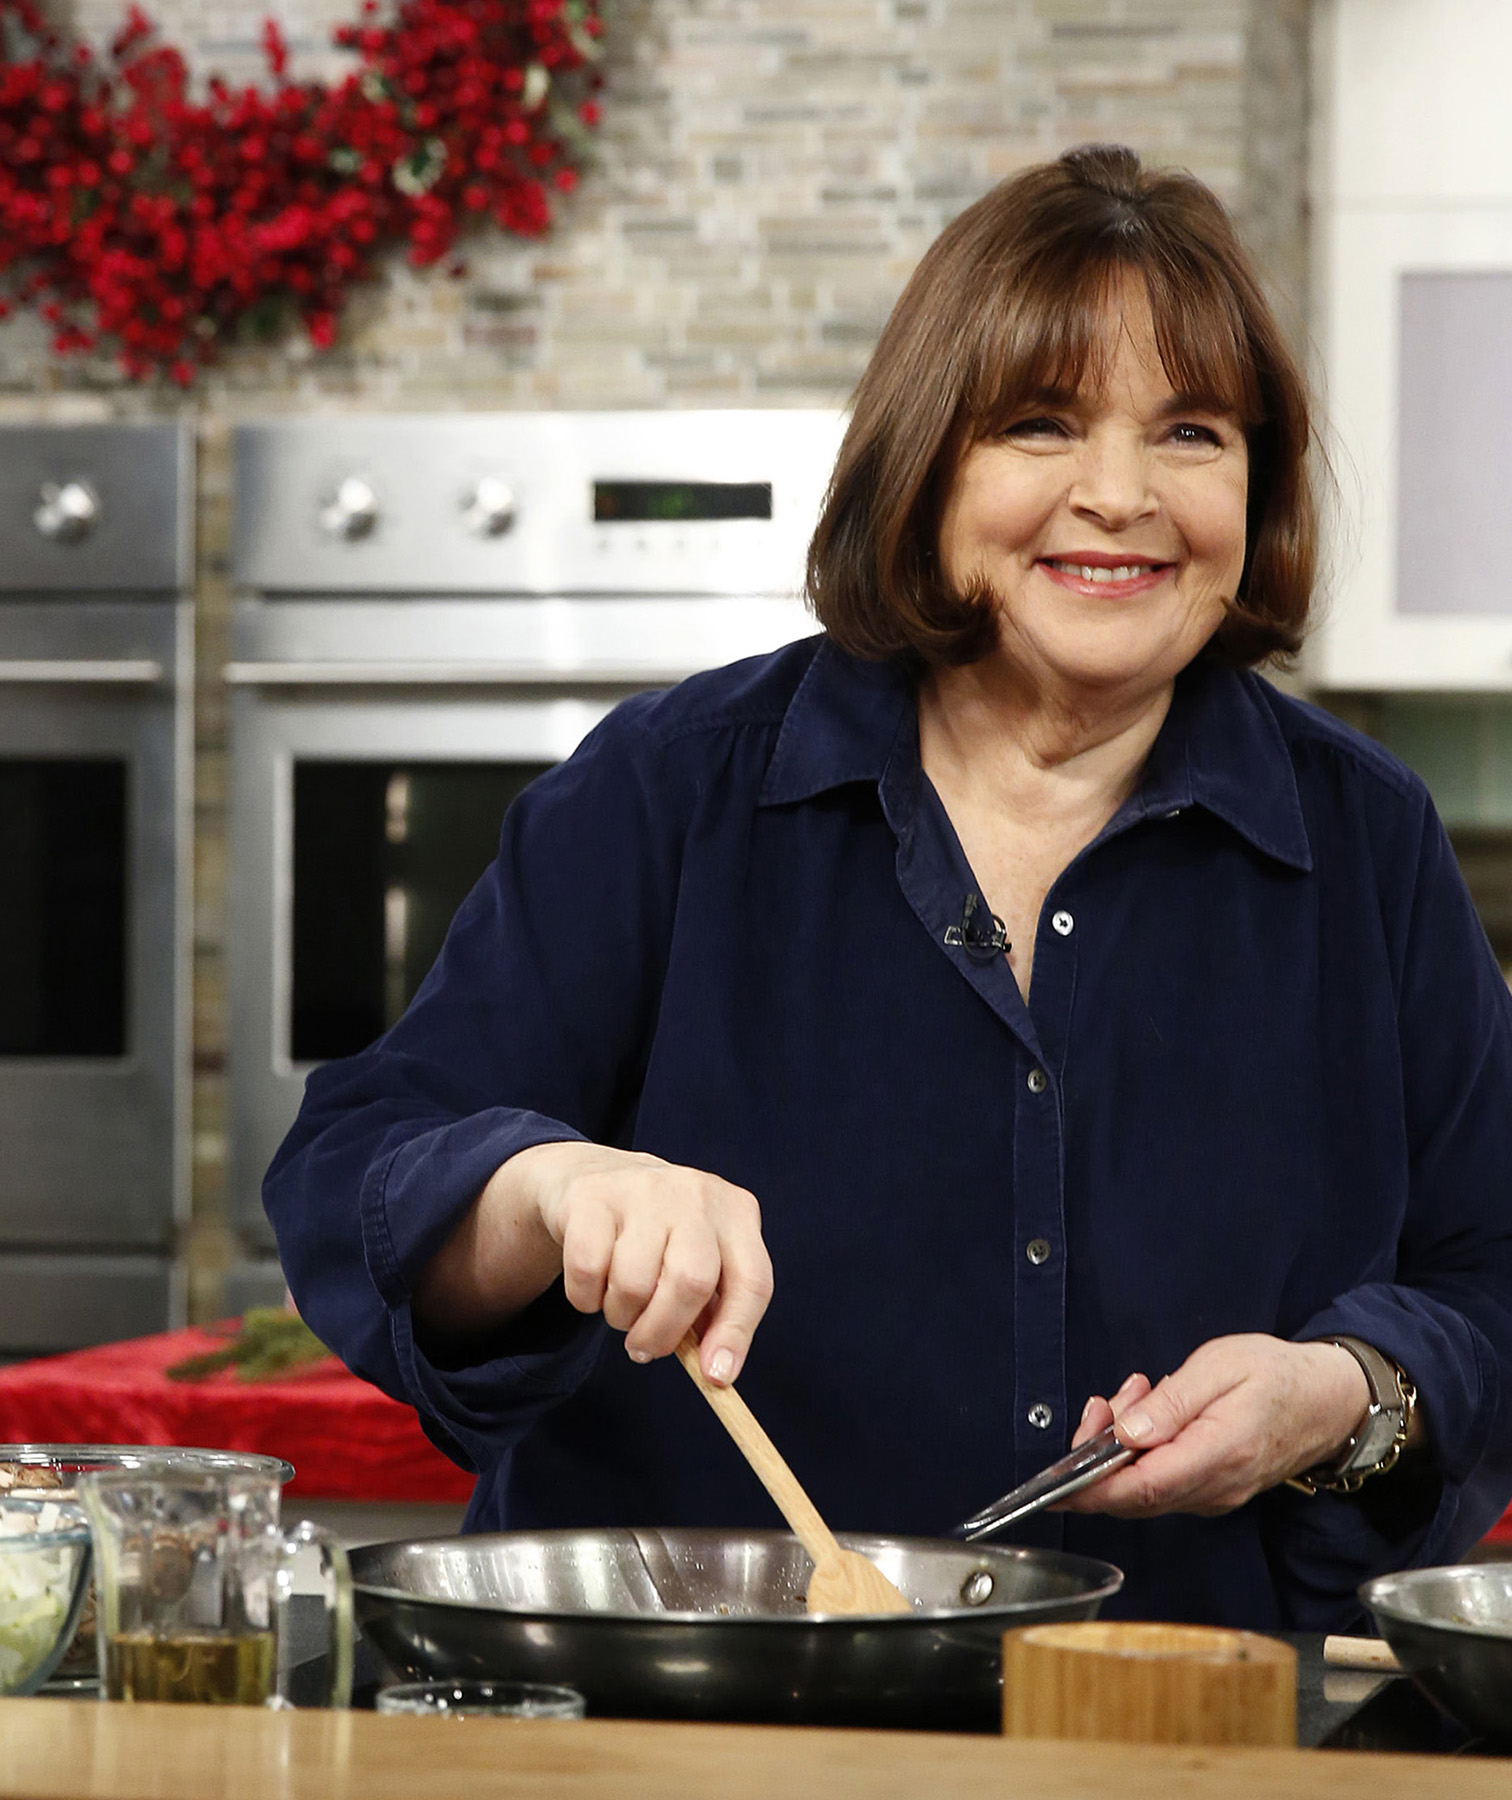 Let Ina Garten Show You How to Host Thanksgiving